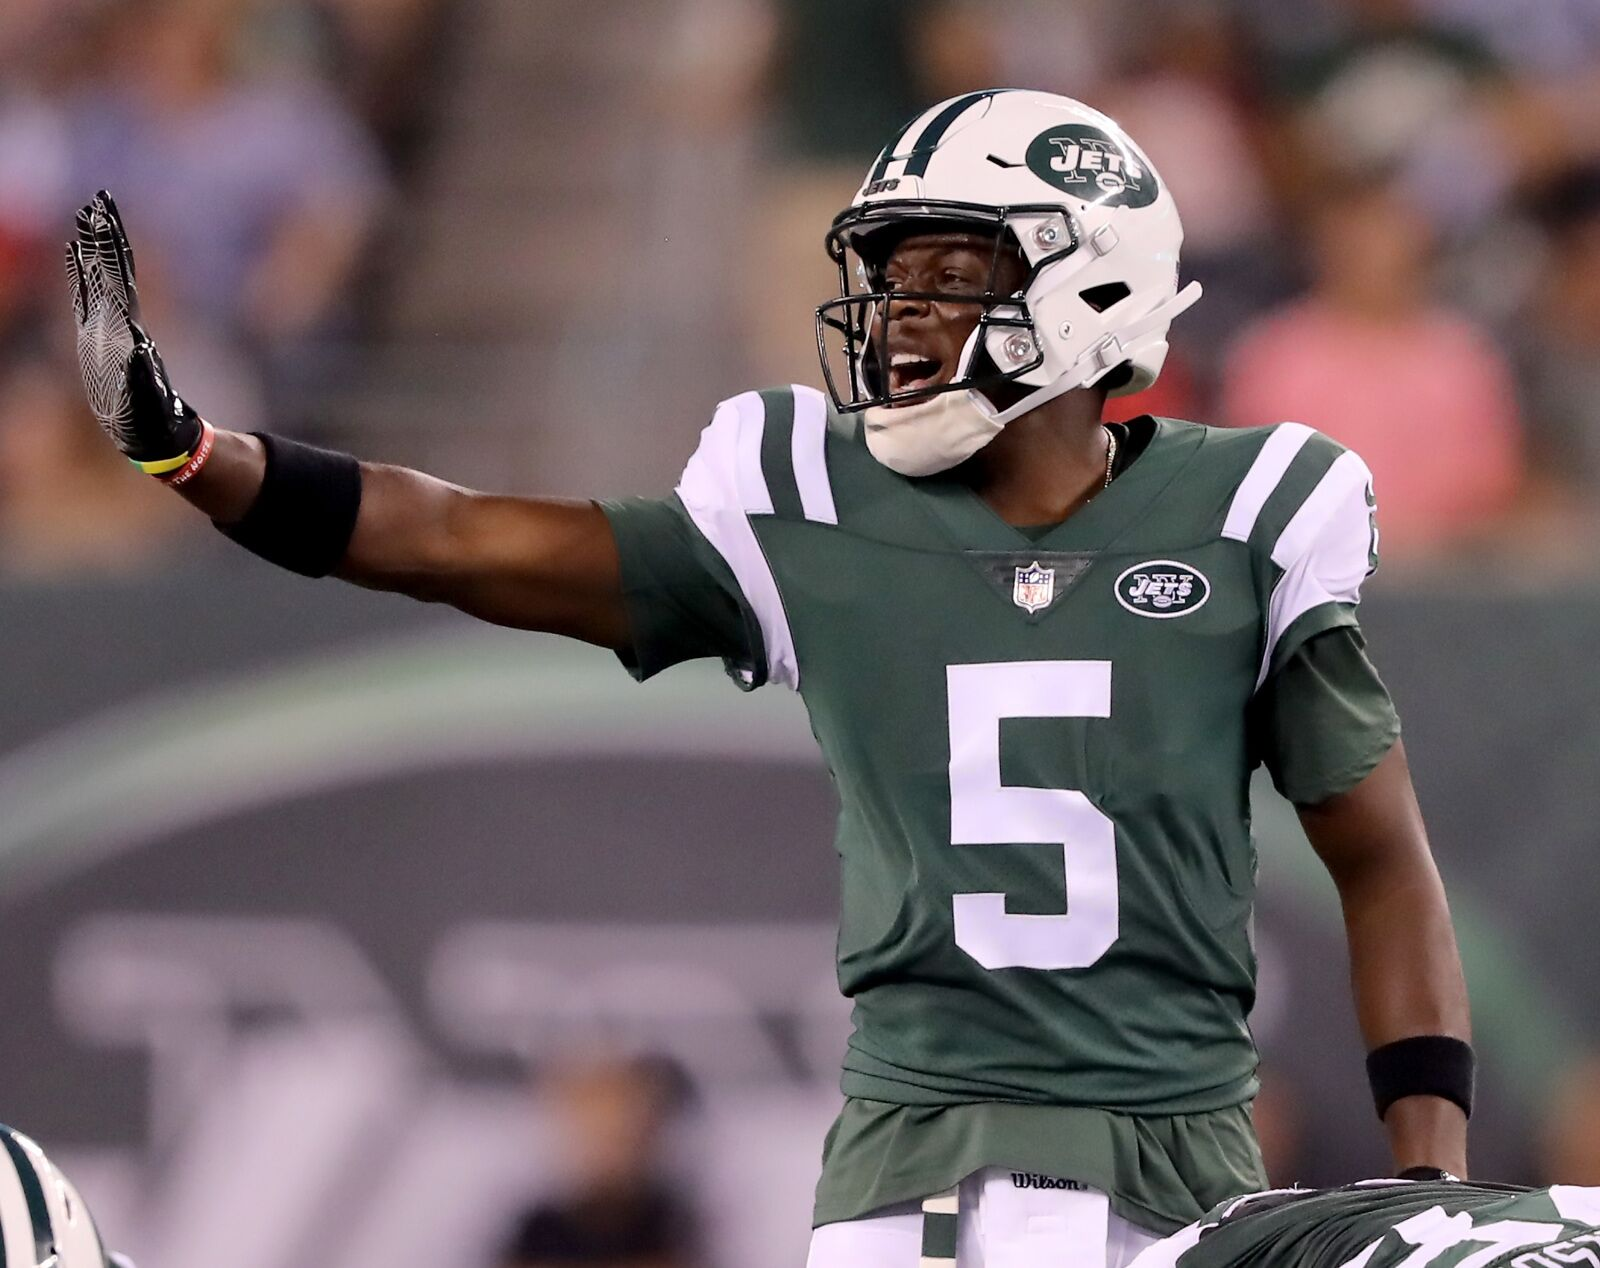 Should the Dallas Cowboys trade for Teddy Bridgewater?